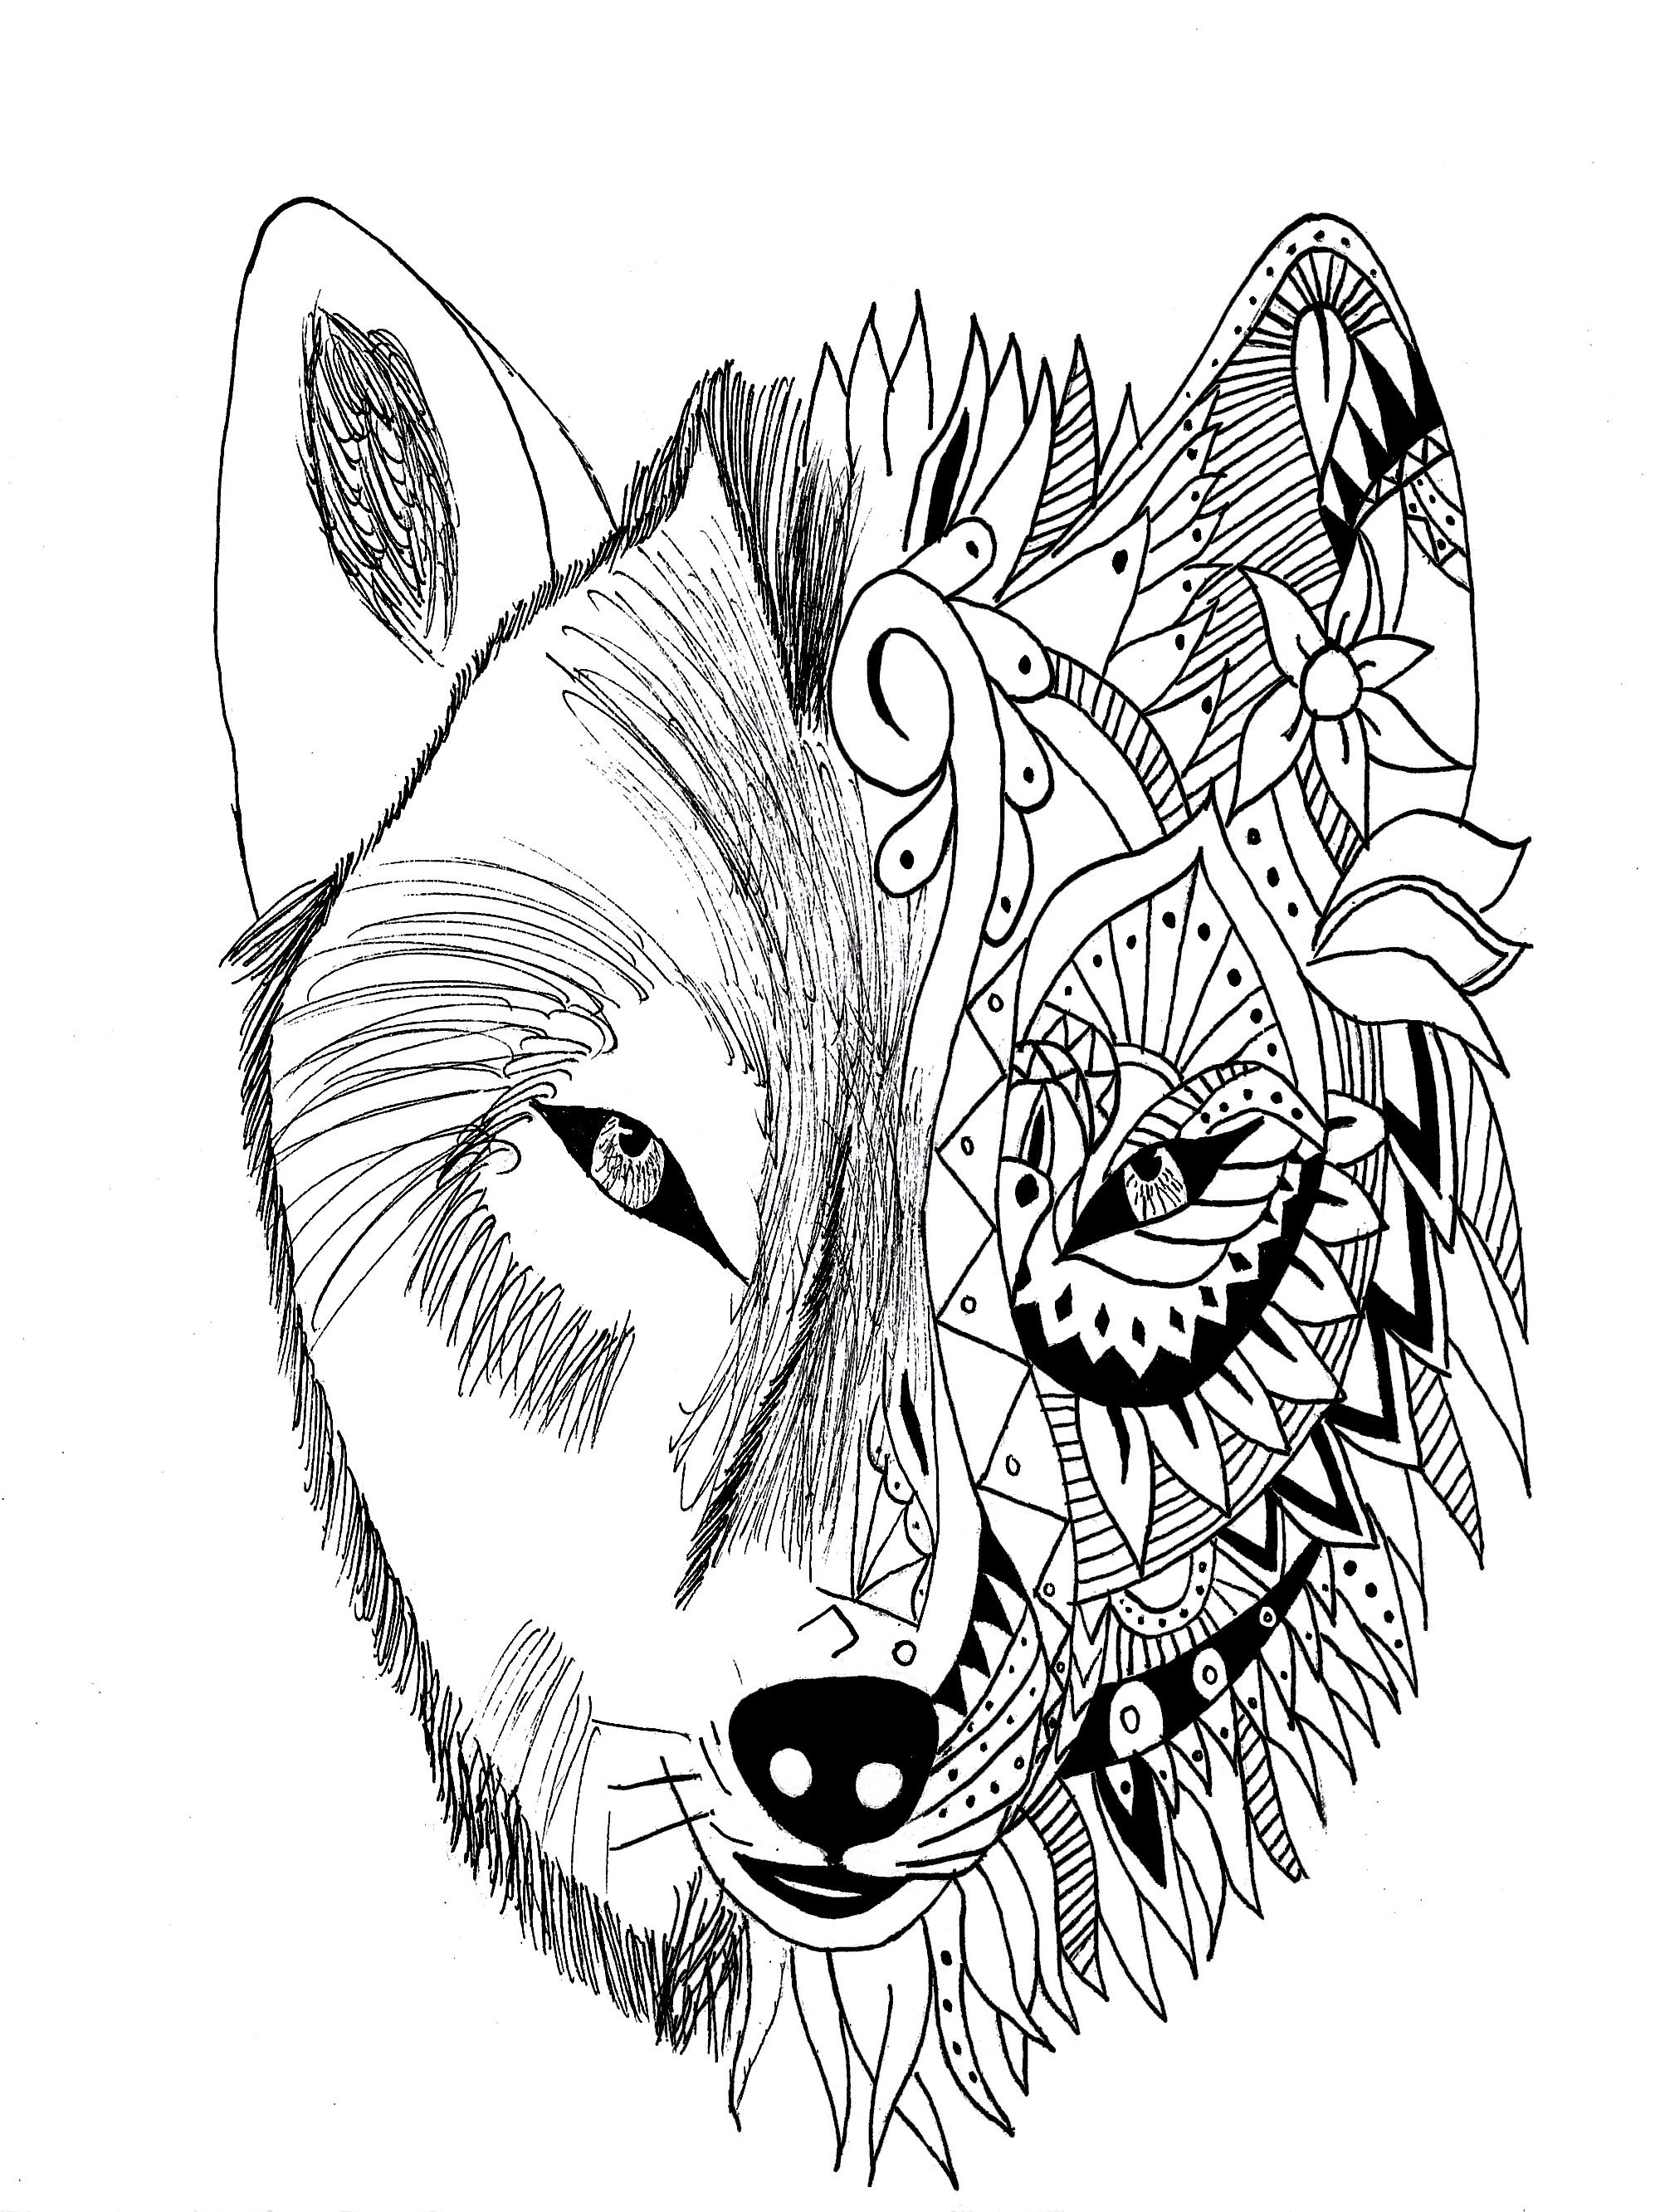 werewolf coloring page werewolf face drawing at getdrawings free download werewolf coloring page